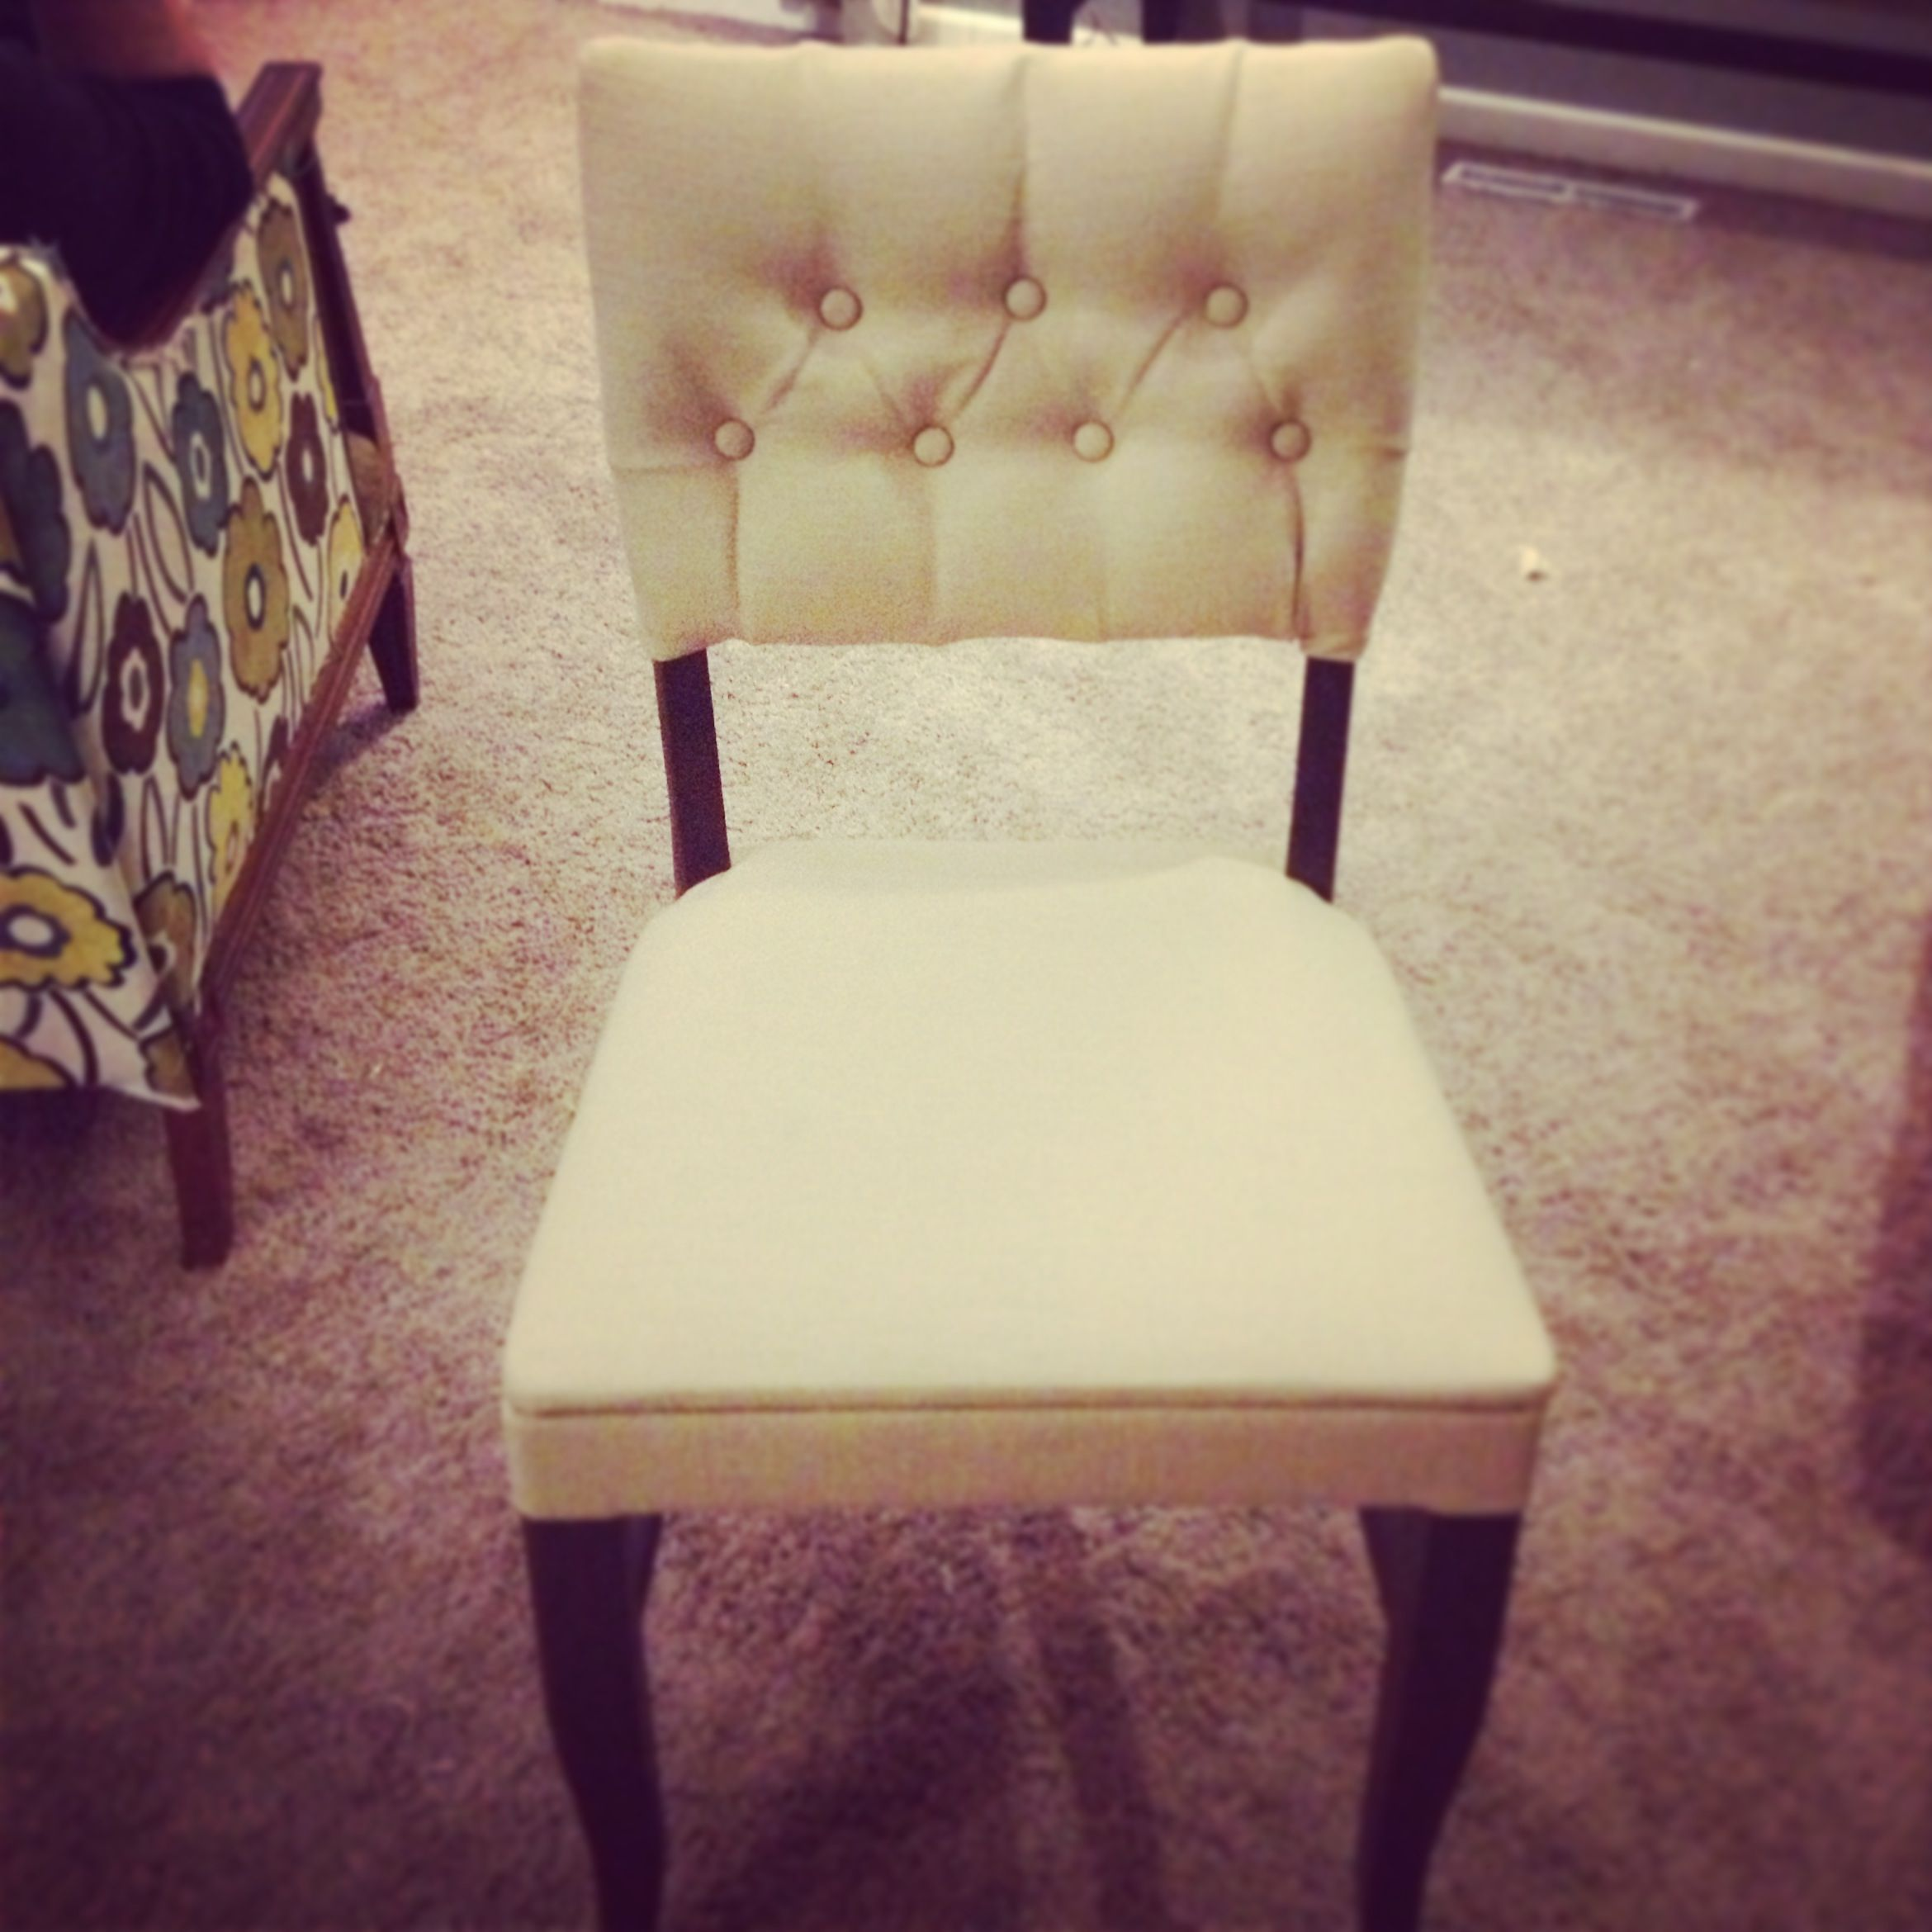 Redone chair   Chair redo, Chair, Dining chairs